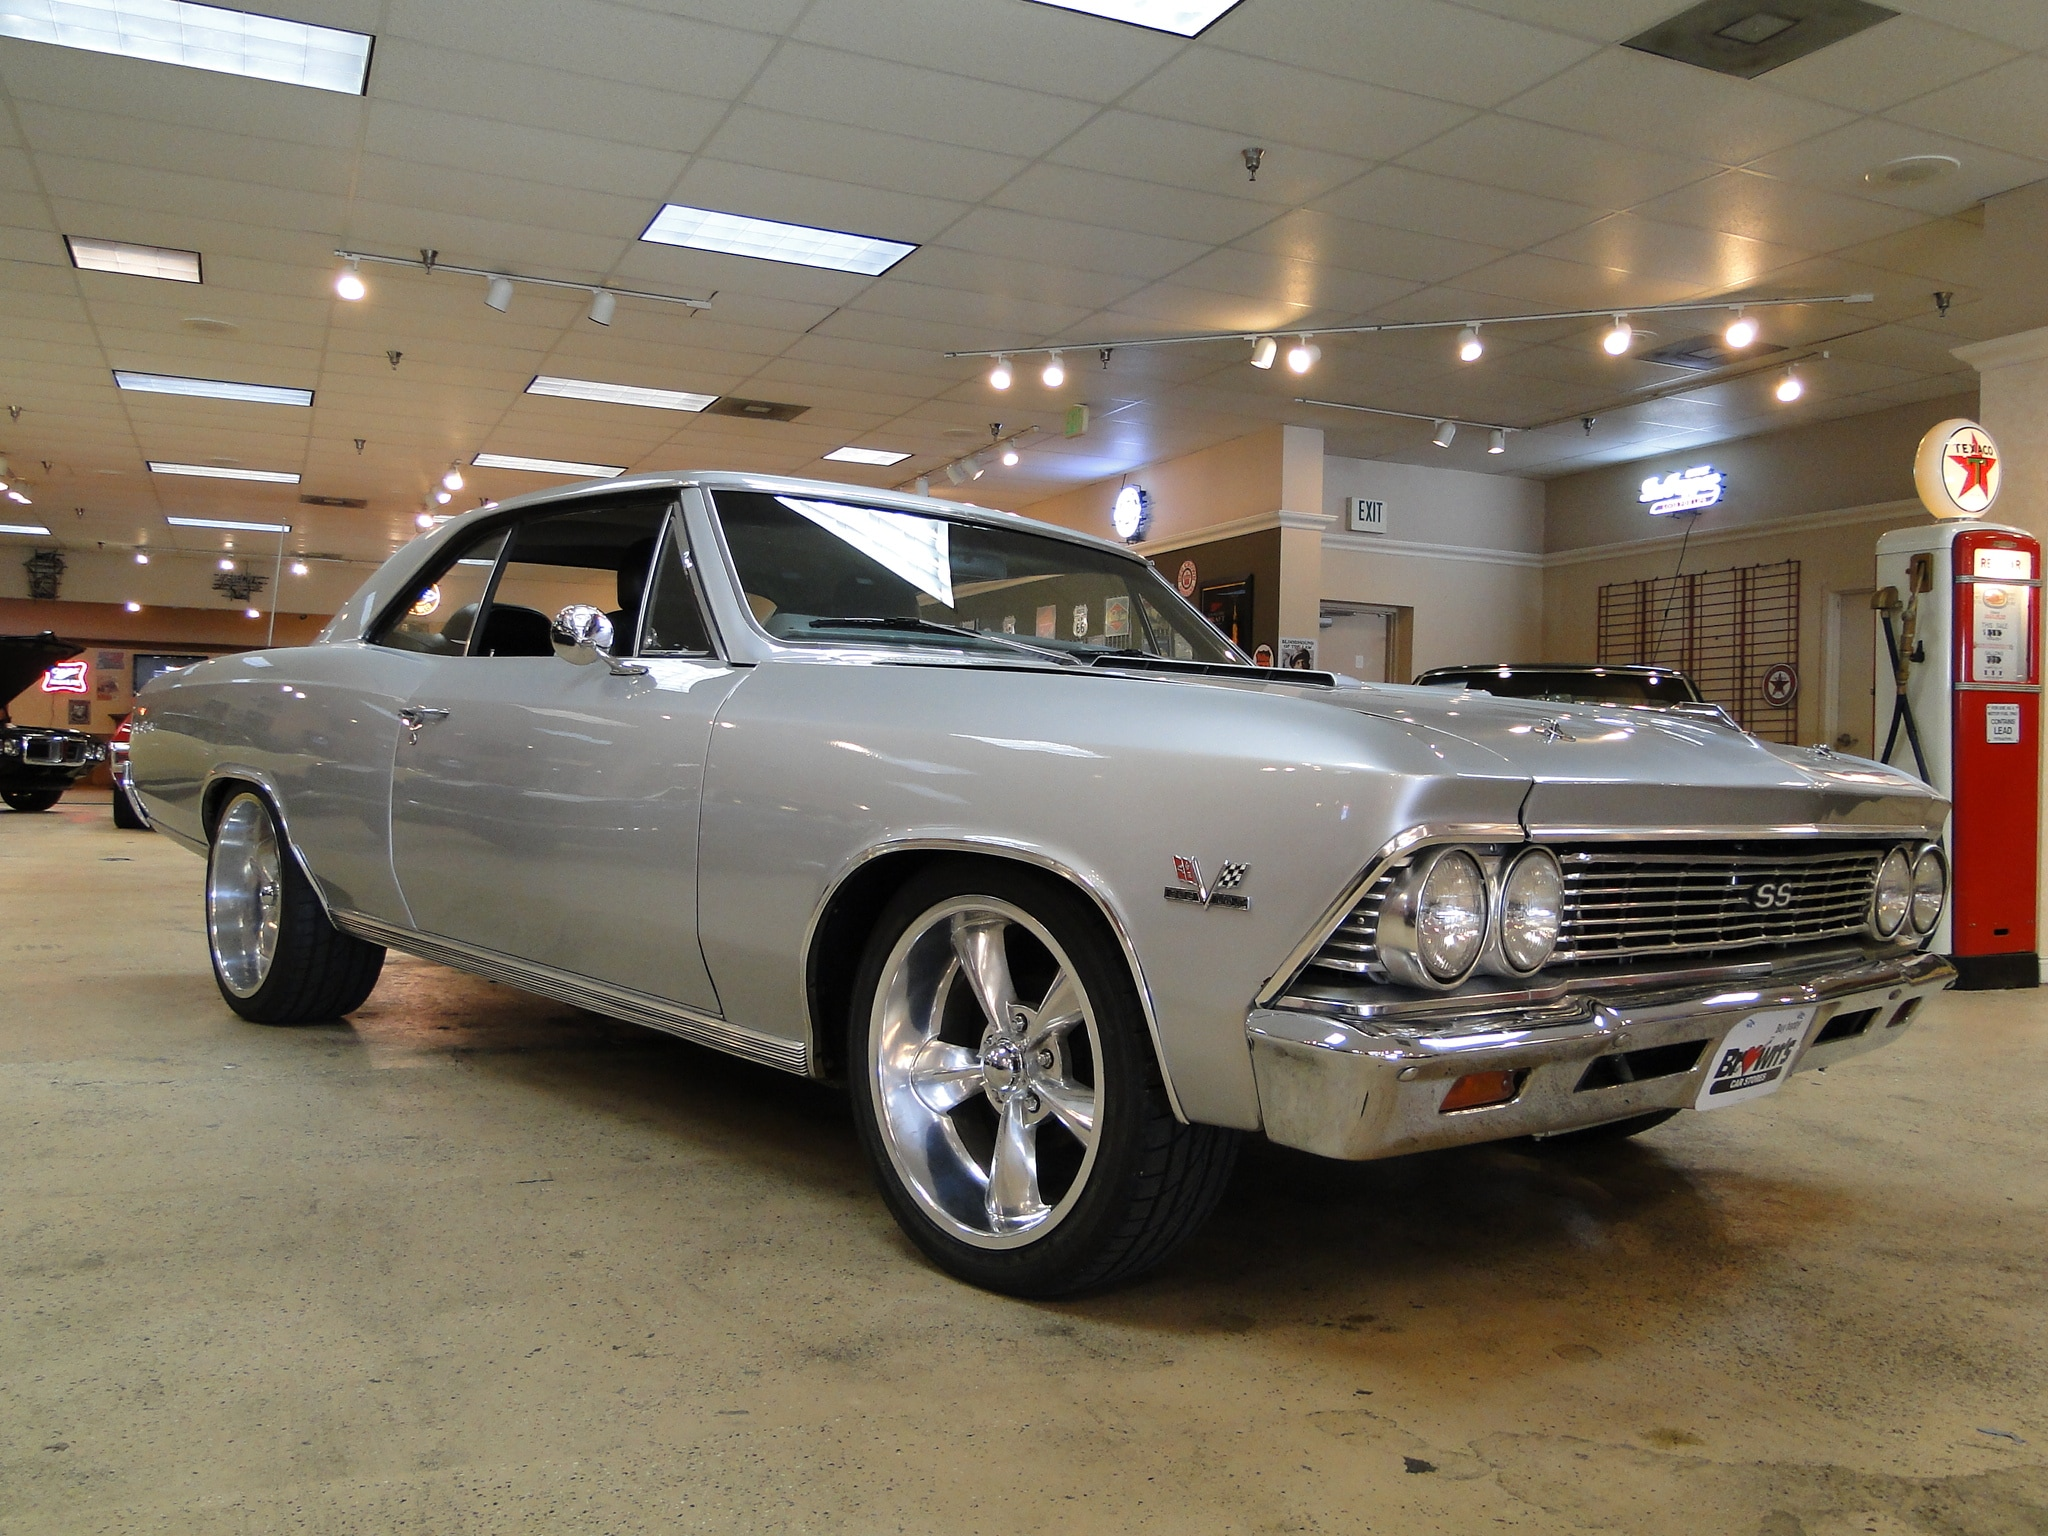 New 1966 Chevrolet Chevelle SS Tribute Resto Mod SOLD TO MD